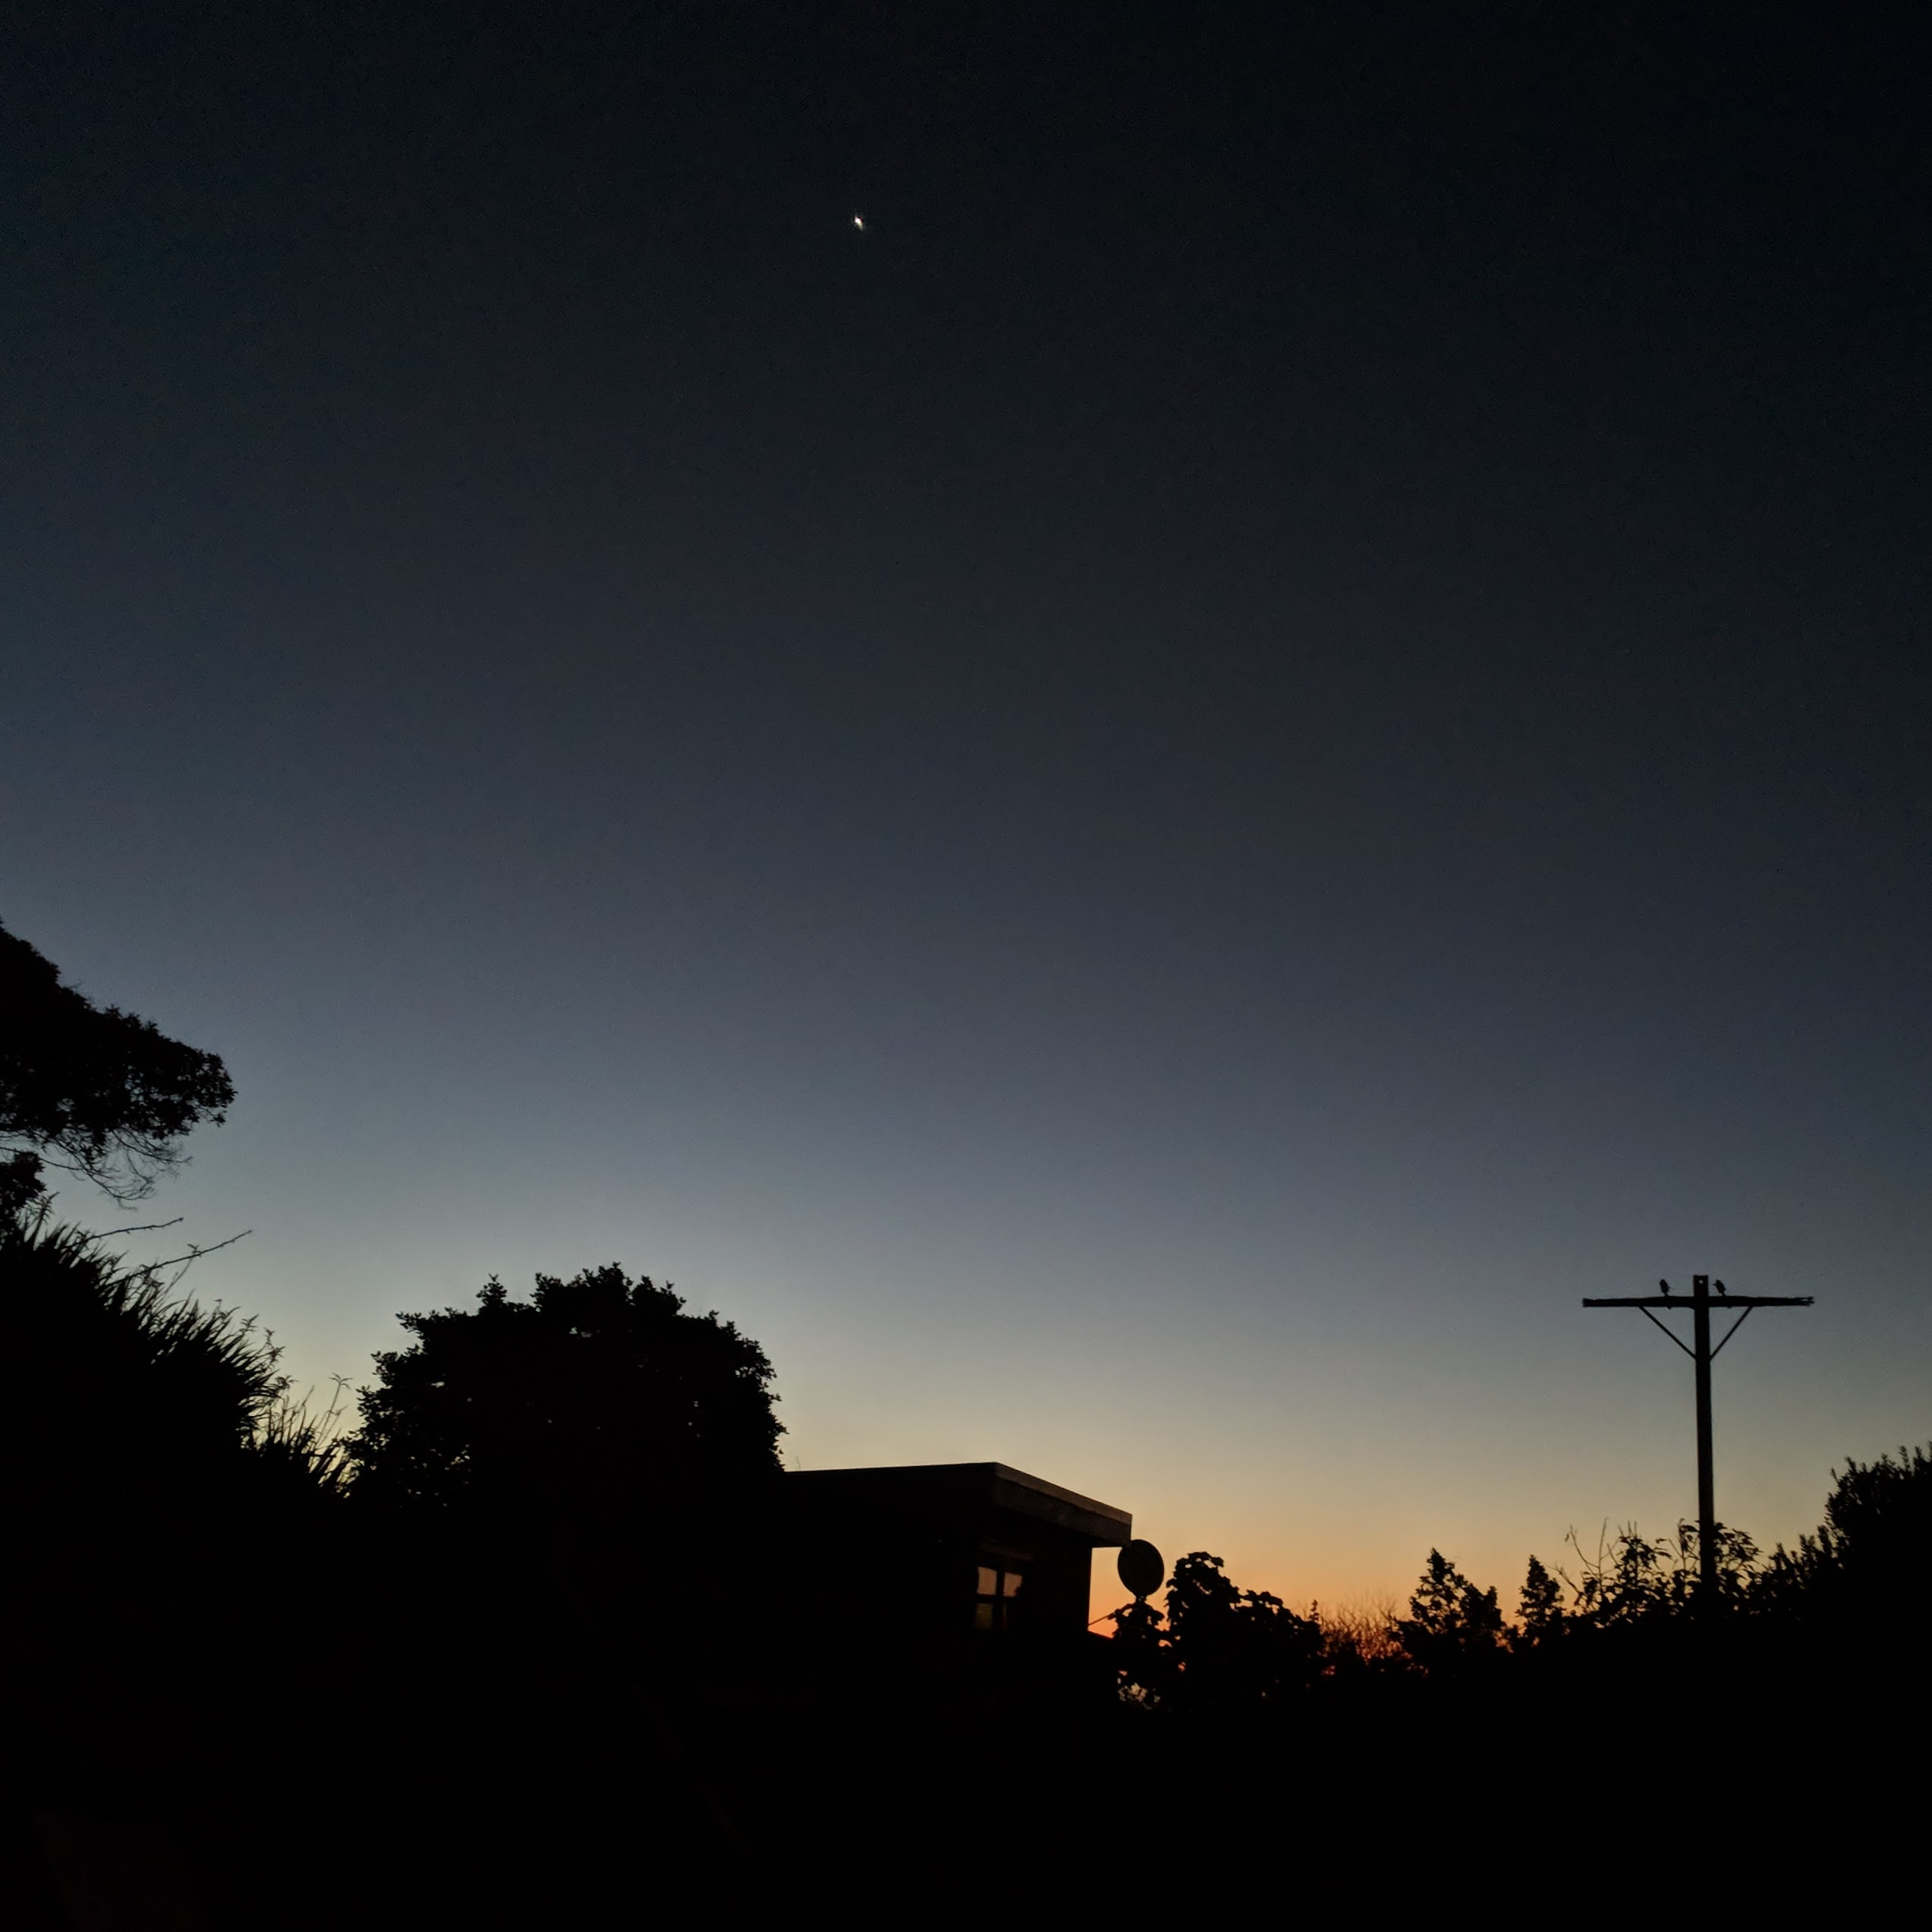 Clear sunset over Paekākāriki houses with Venus in view